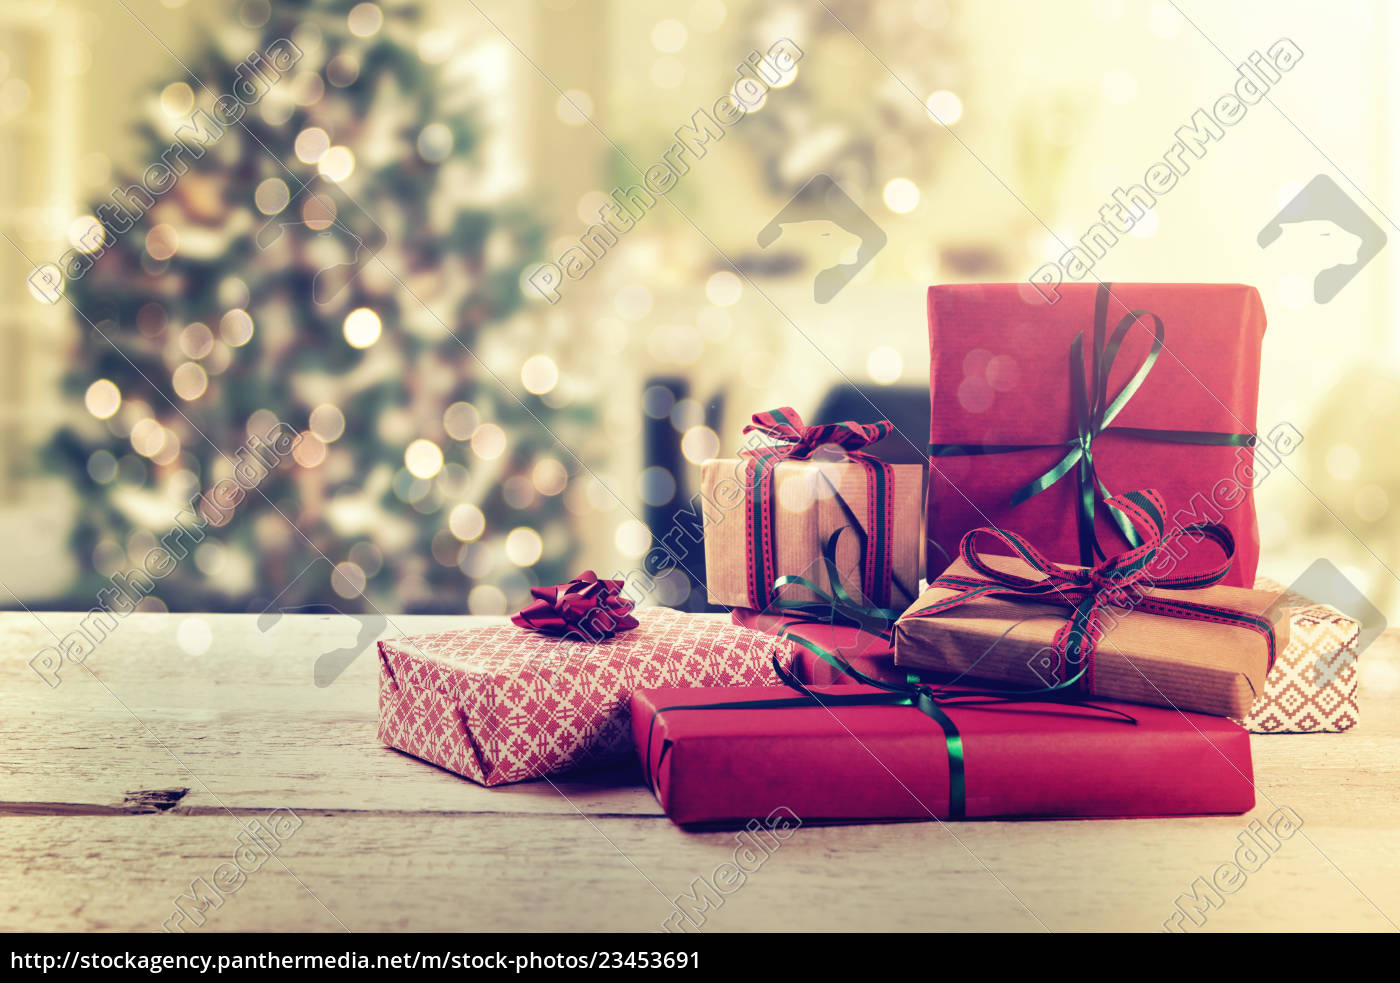 wrapped, gifts, on, christmas, tree, backgound - 23453691